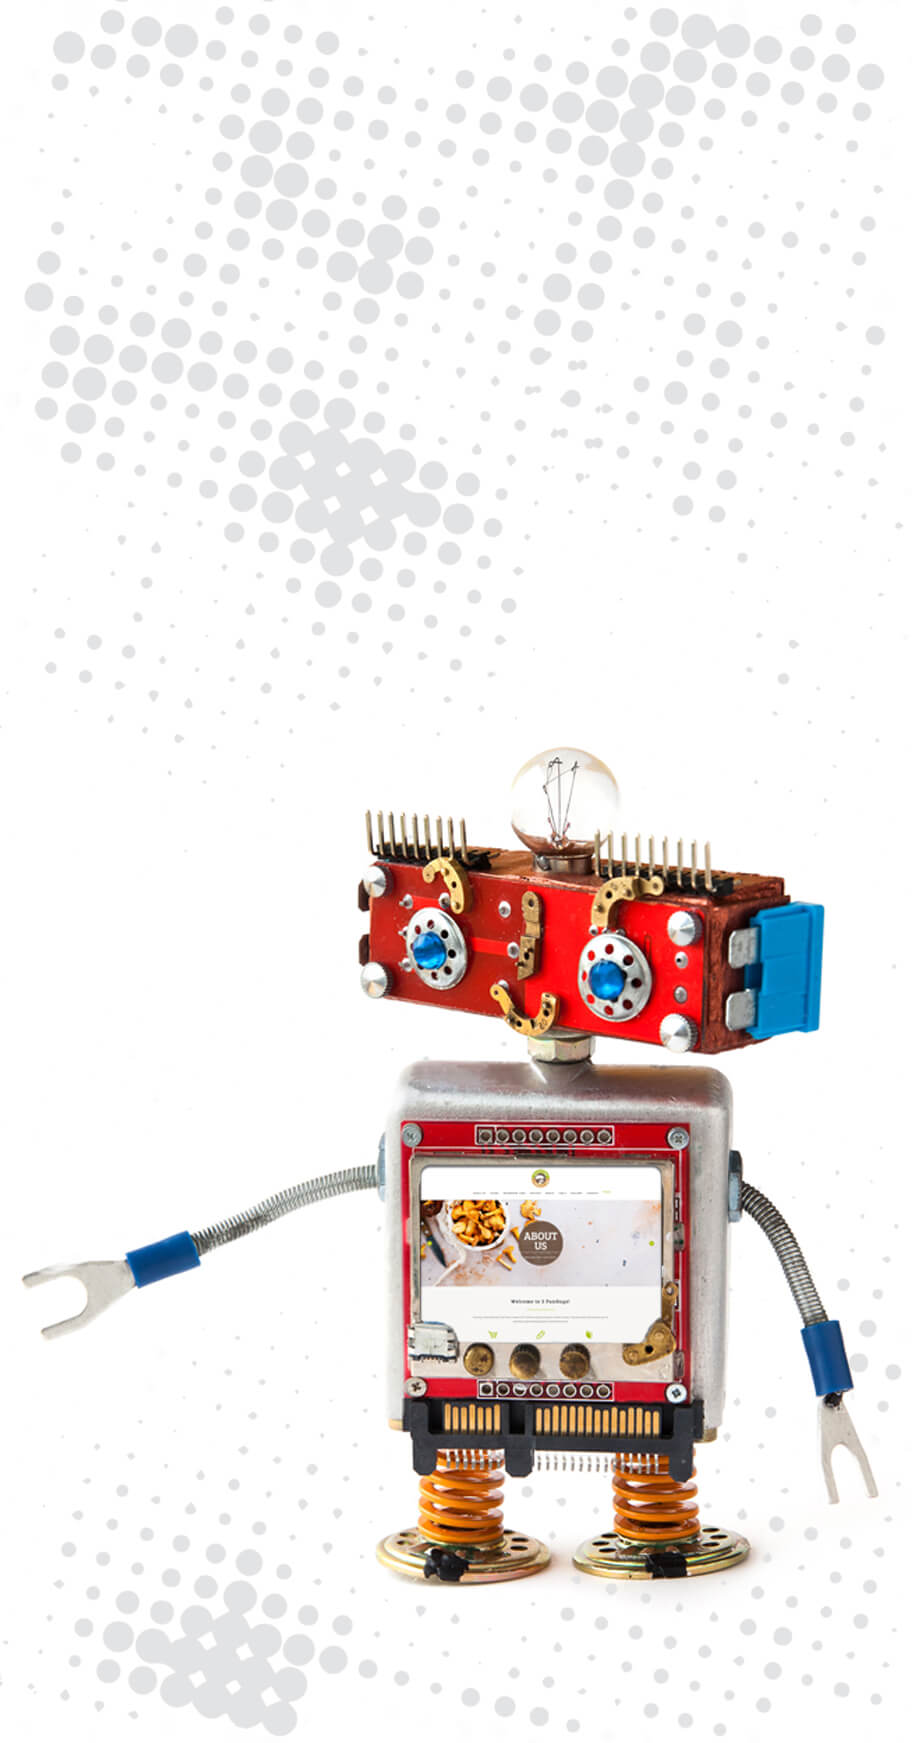 robot with web image on chest